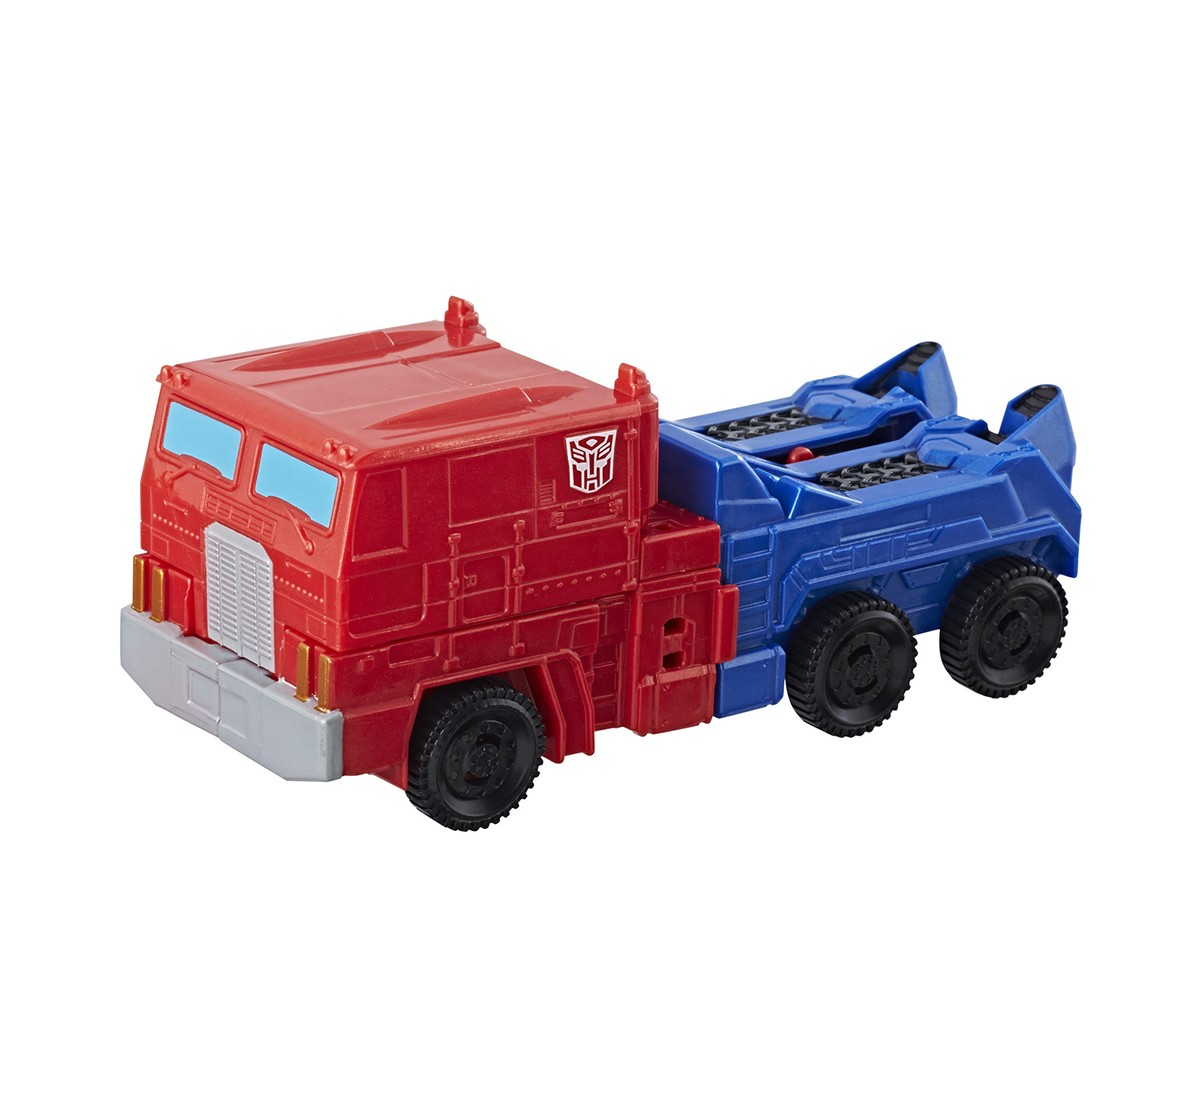 Transformers Authentics Alpha Action Figure Assorted for Kids age 6Y+